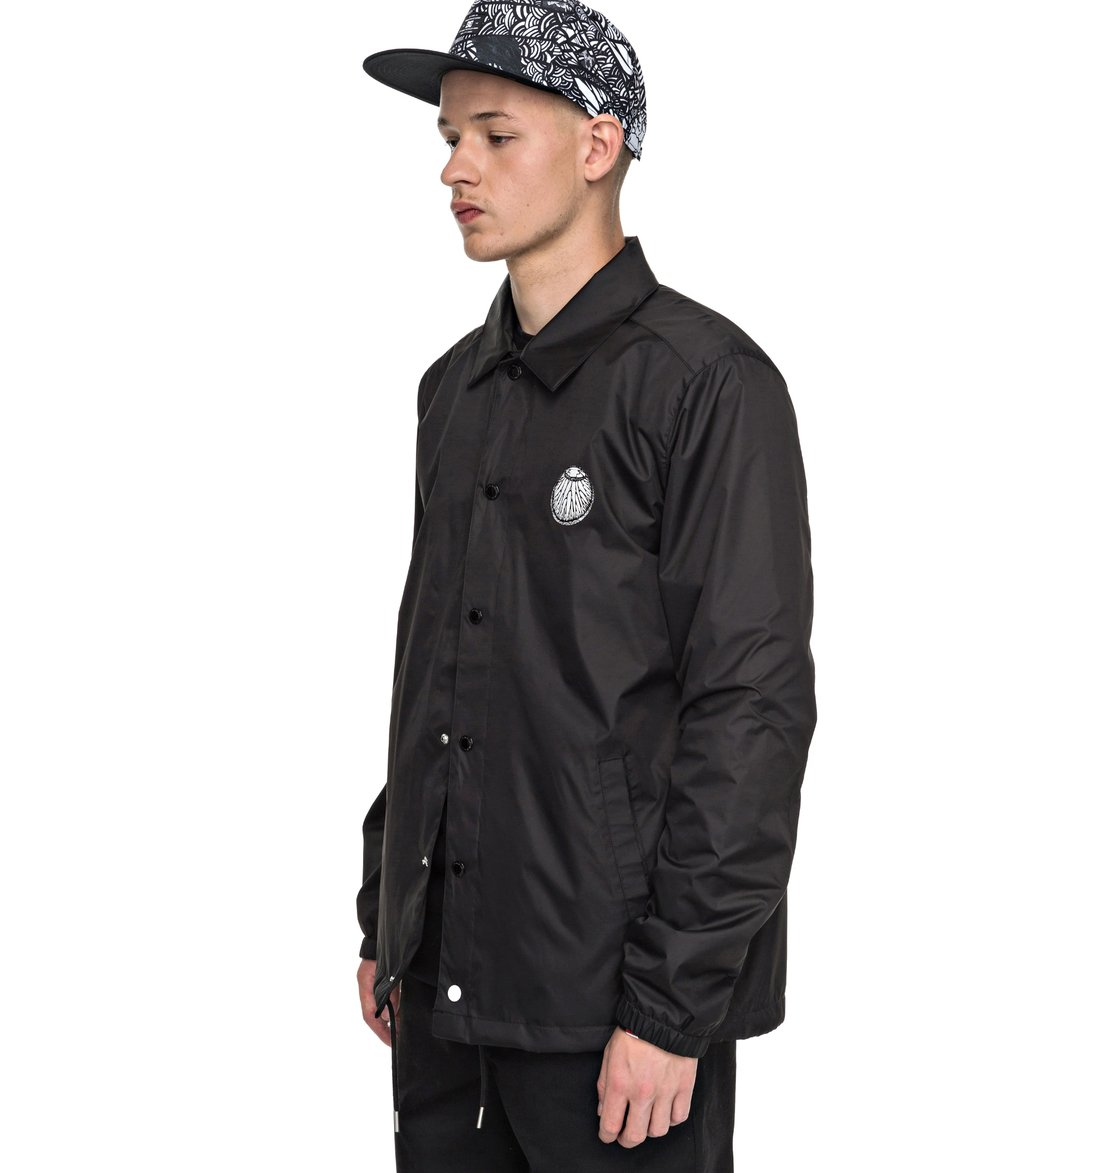 Men 39 s darbotz coach jacket edyjk03130 dc shoes for Coach jacket